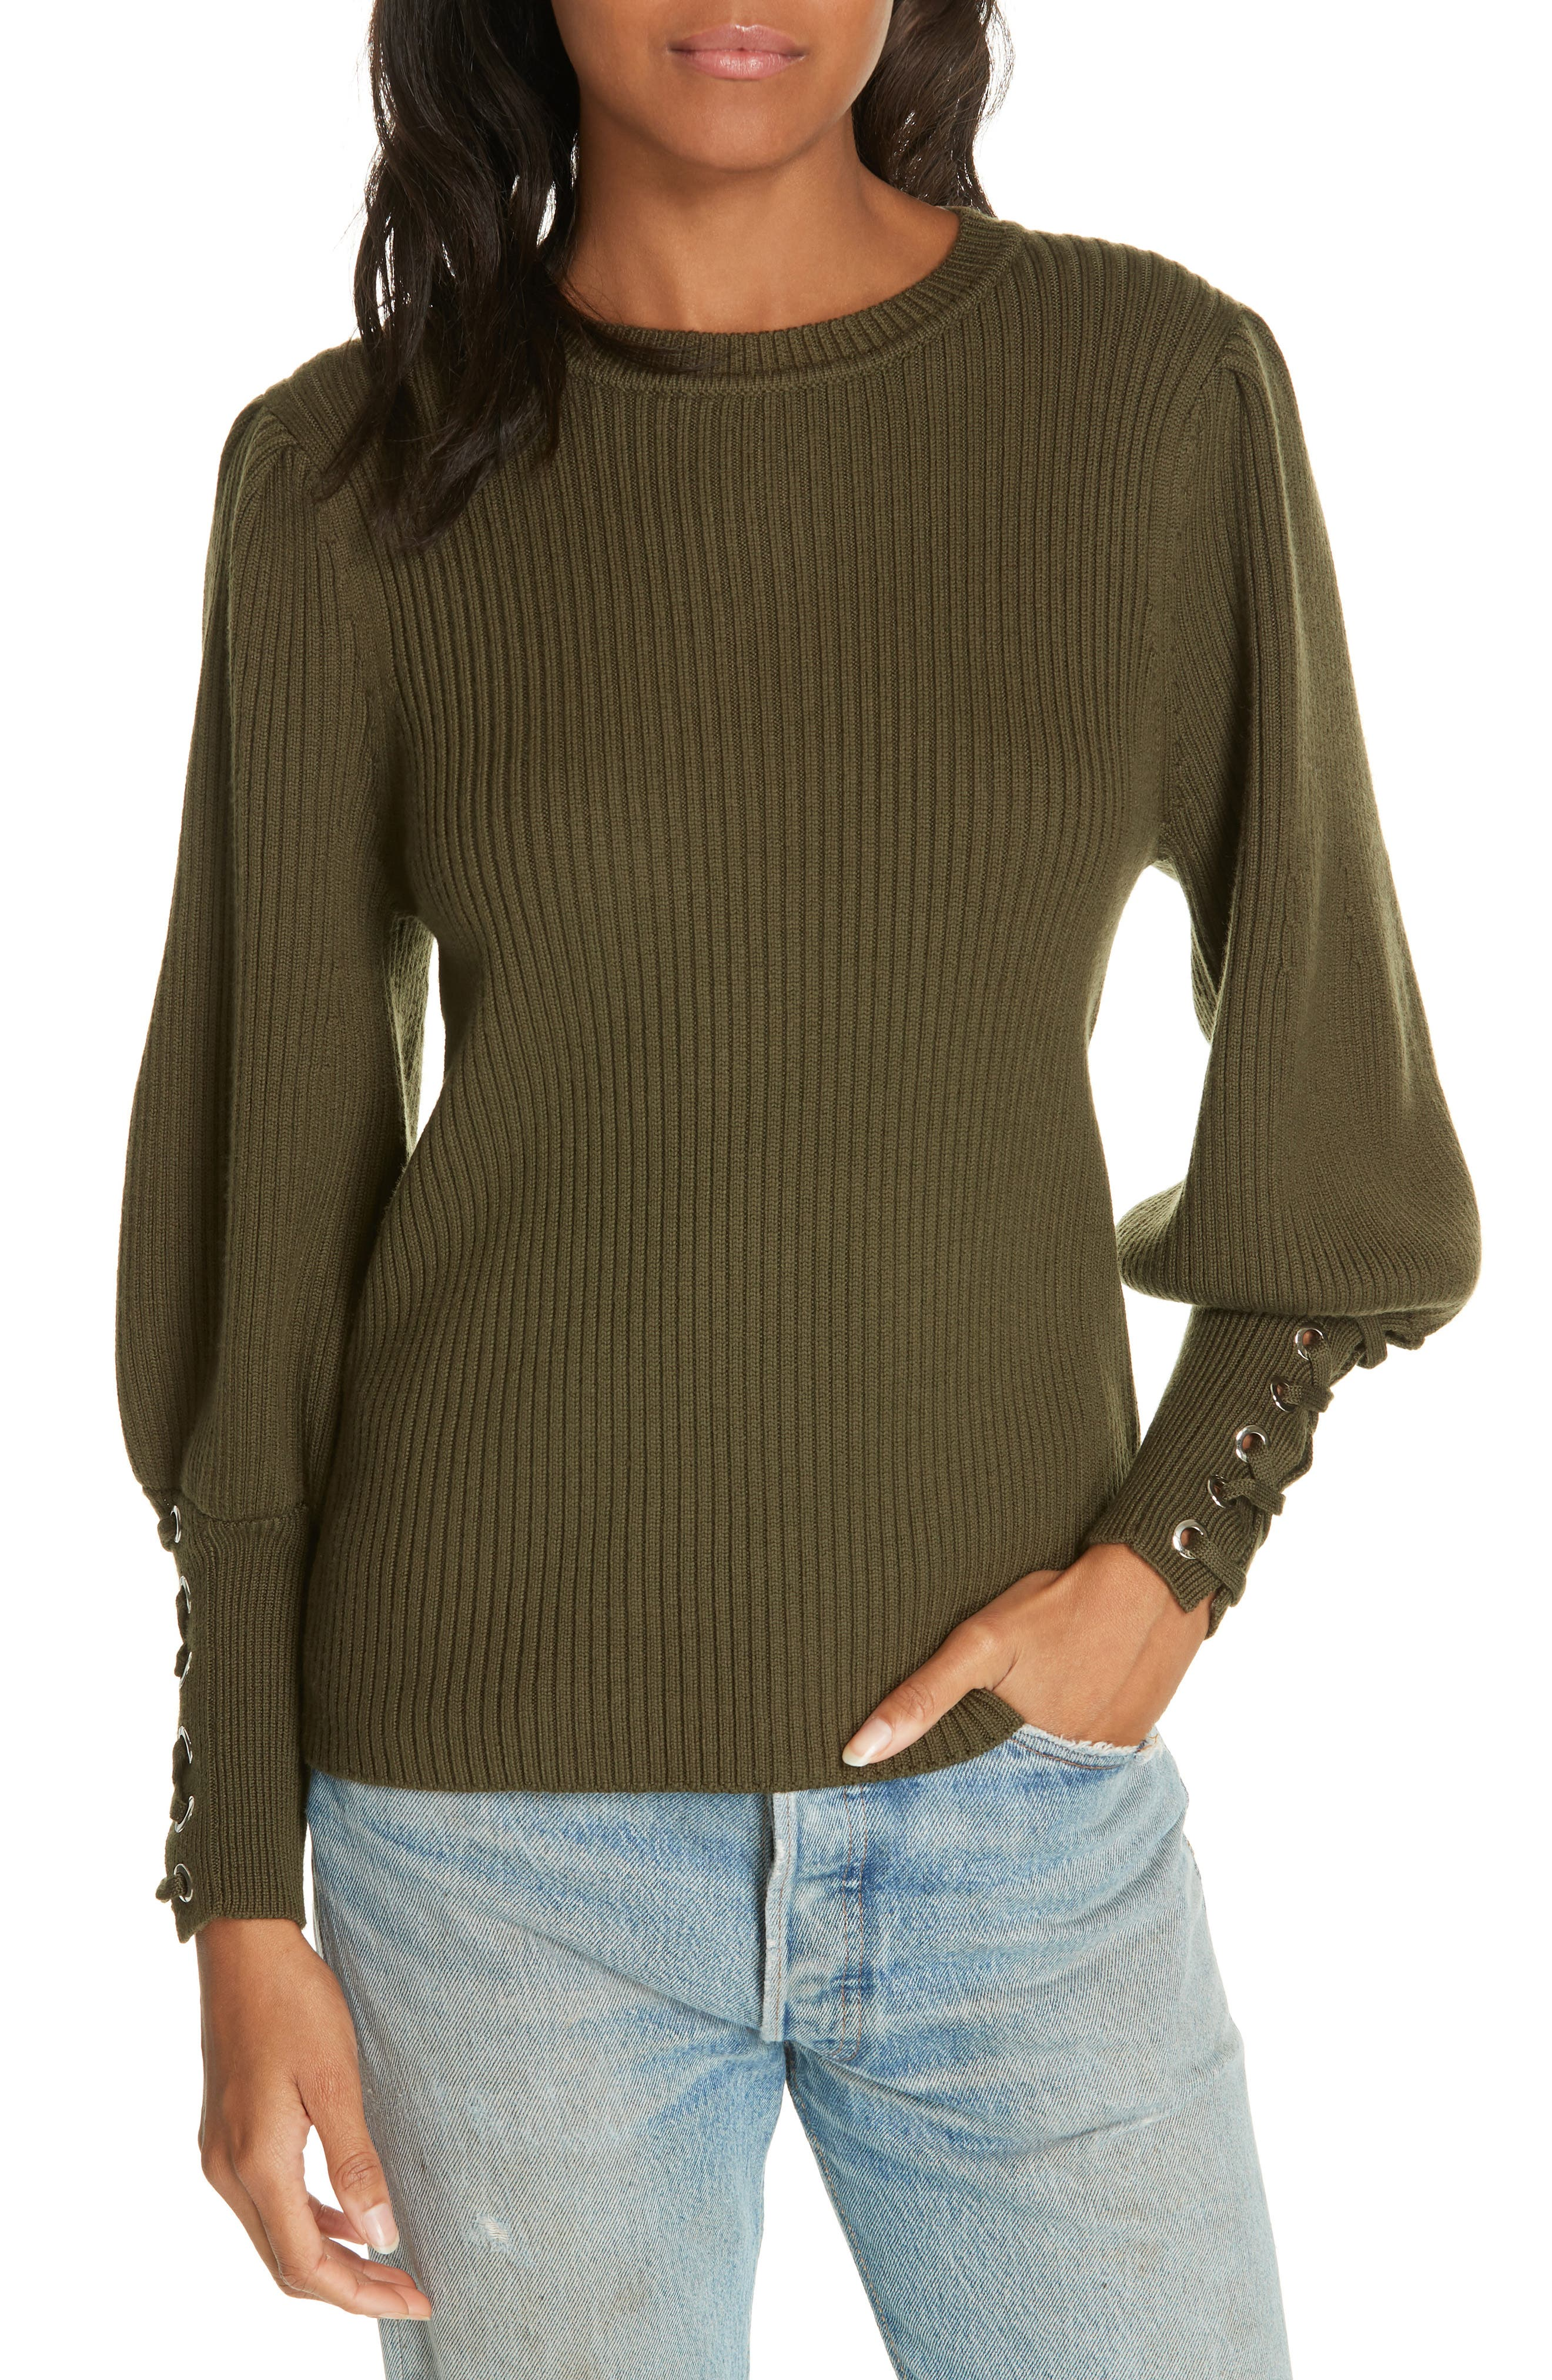 Zelie Lace-Up Cuff Wool Sweater,                             Main thumbnail 1, color,                             KAKI